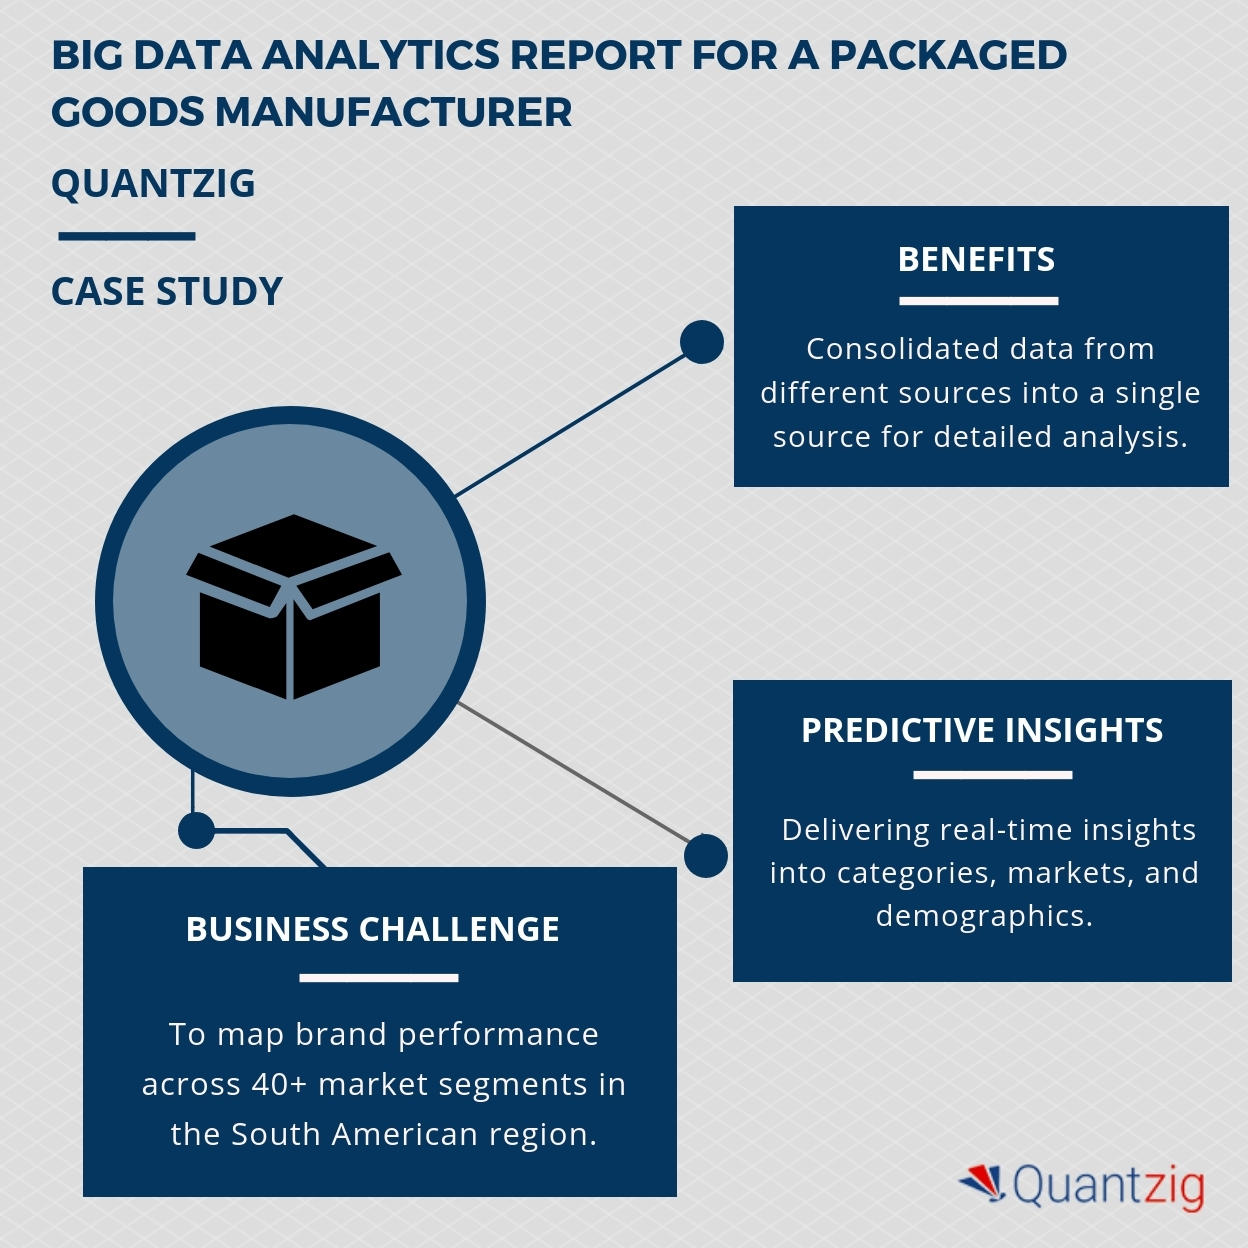 Improving Business Decisions With The Help Of Big Data Analytics A Wiring Harness Manufacturers In Canada Case Study On Global Cpg Industry Quantzig Wire